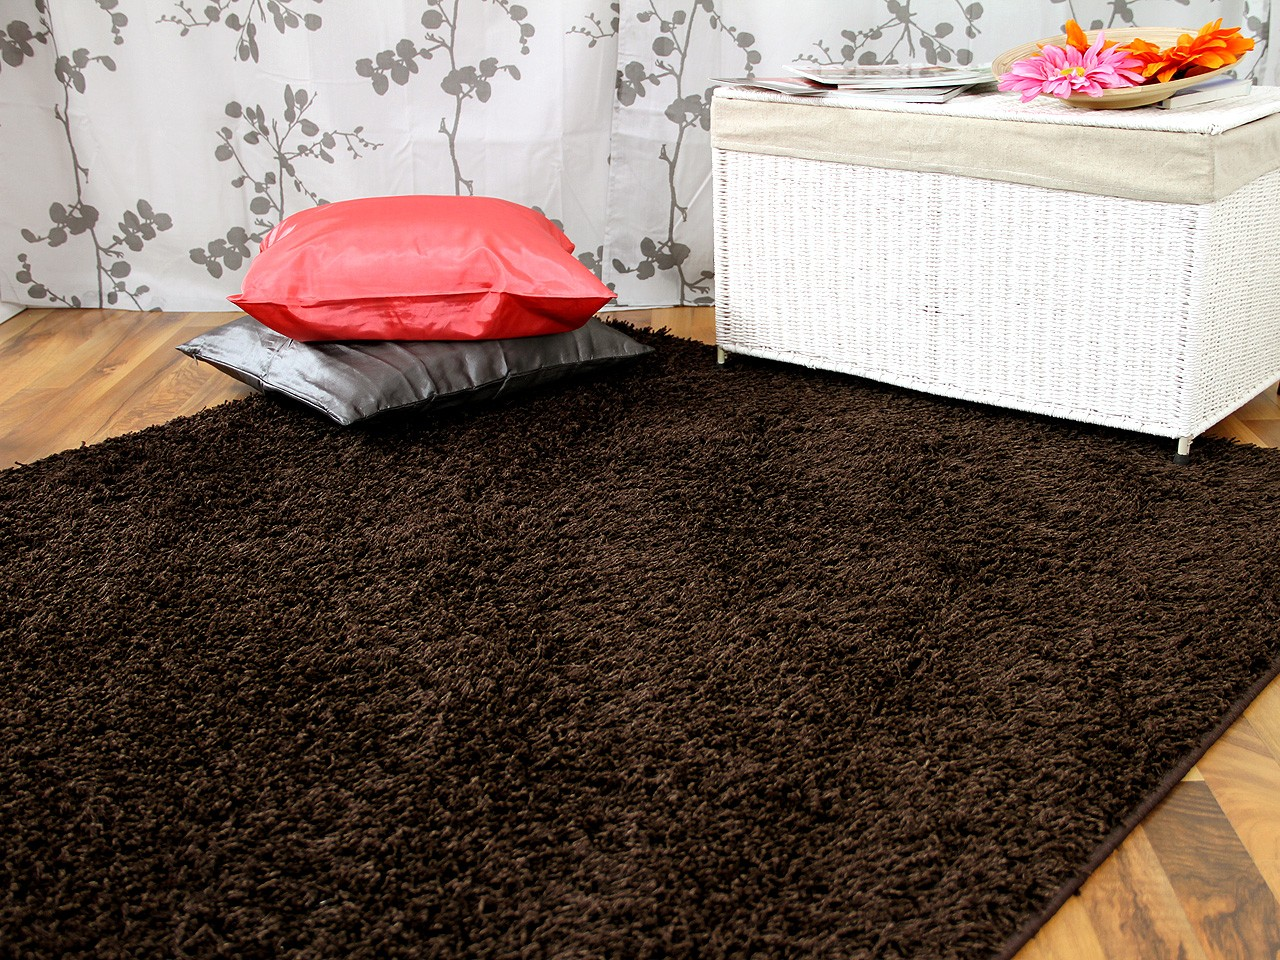 hochflor langflor teppich shaggy nova braun sonderaktion sonderposten hochflor langflor. Black Bedroom Furniture Sets. Home Design Ideas